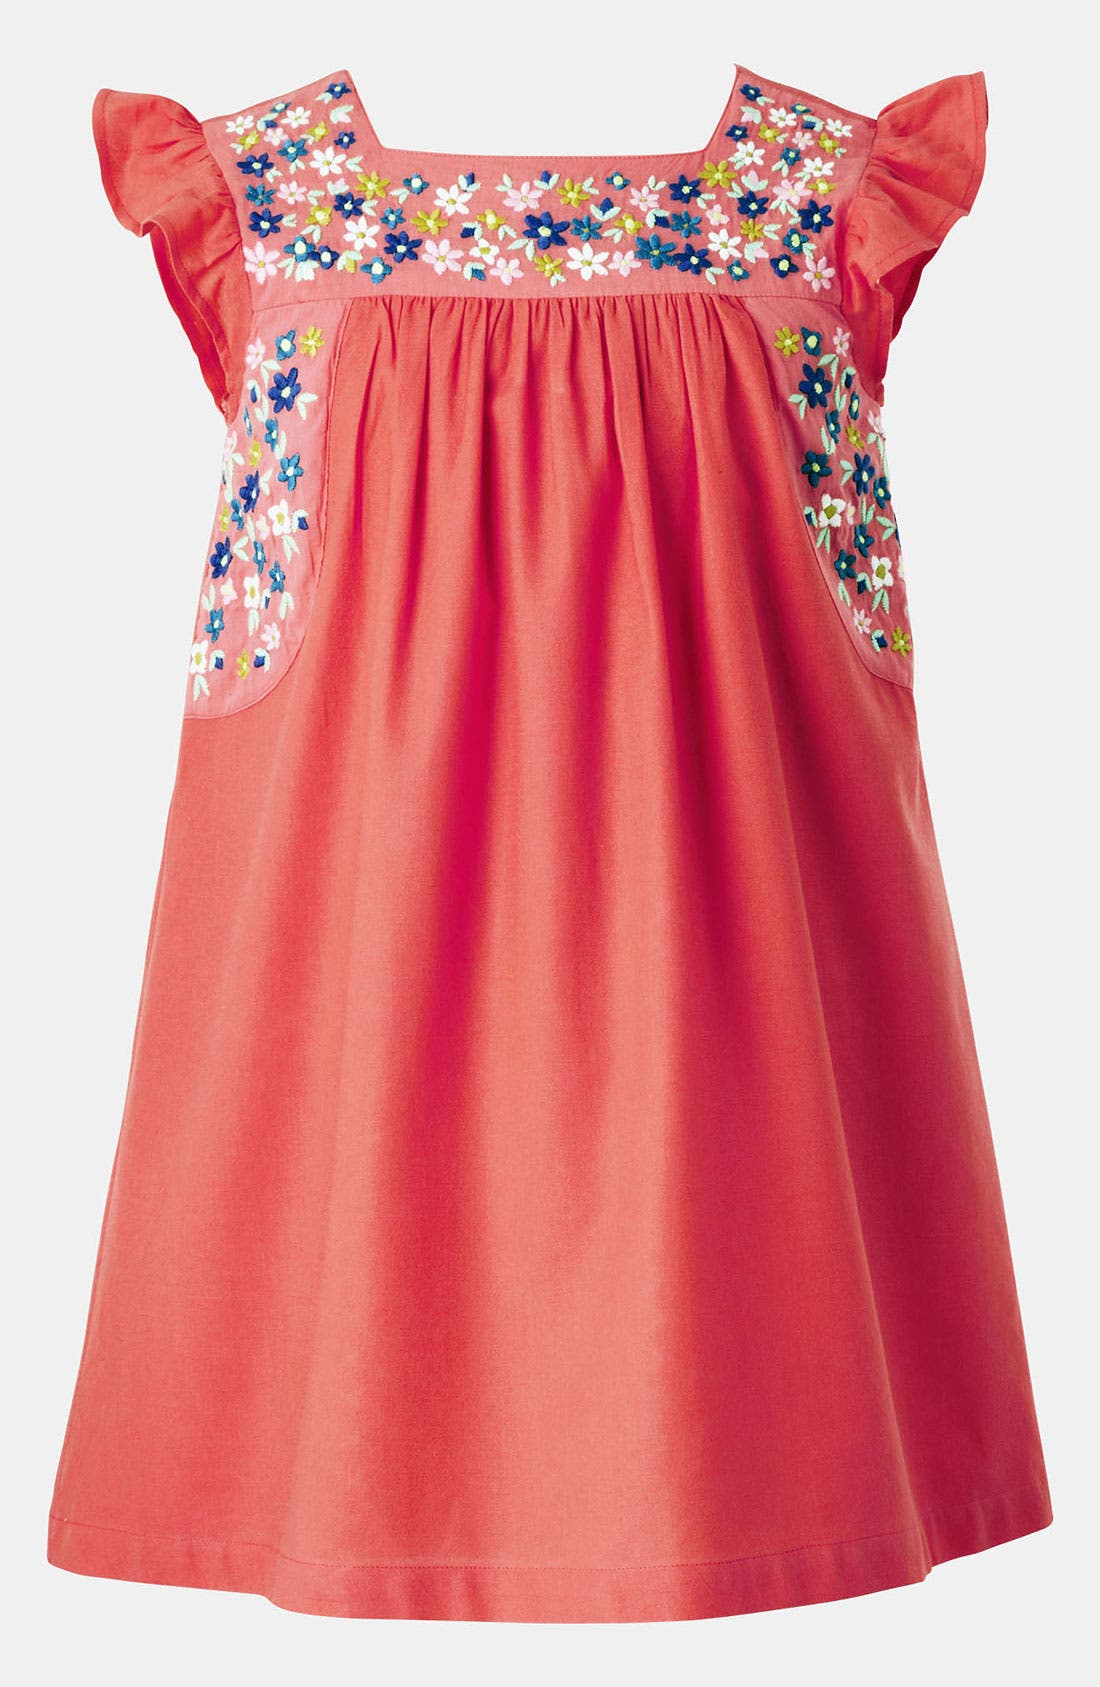 Alternate Image 1 Selected - Mini Boden Embroidered Dress (Big Girls)